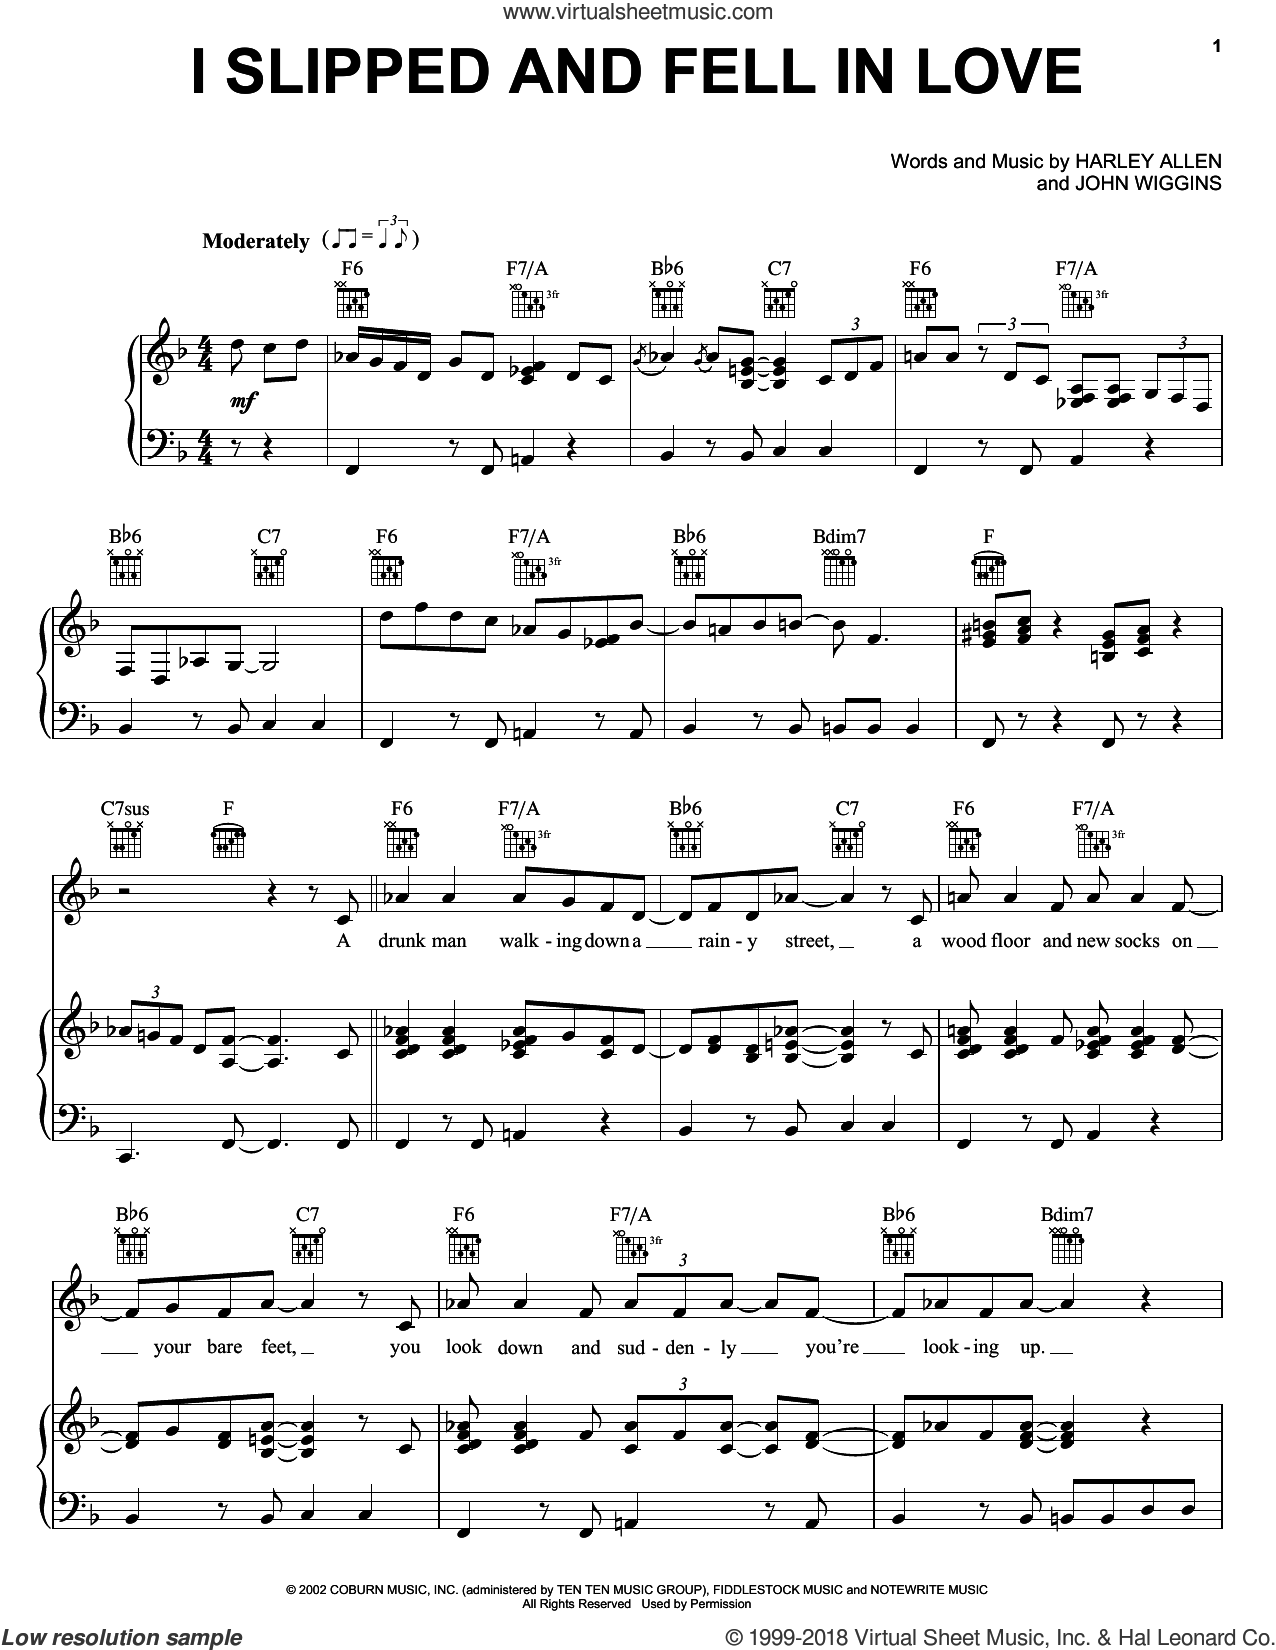 I Slipped And Fell In Love sheet music for voice, piano or guitar by Alan Jackson, Harley Allen and John Wiggins, intermediate skill level